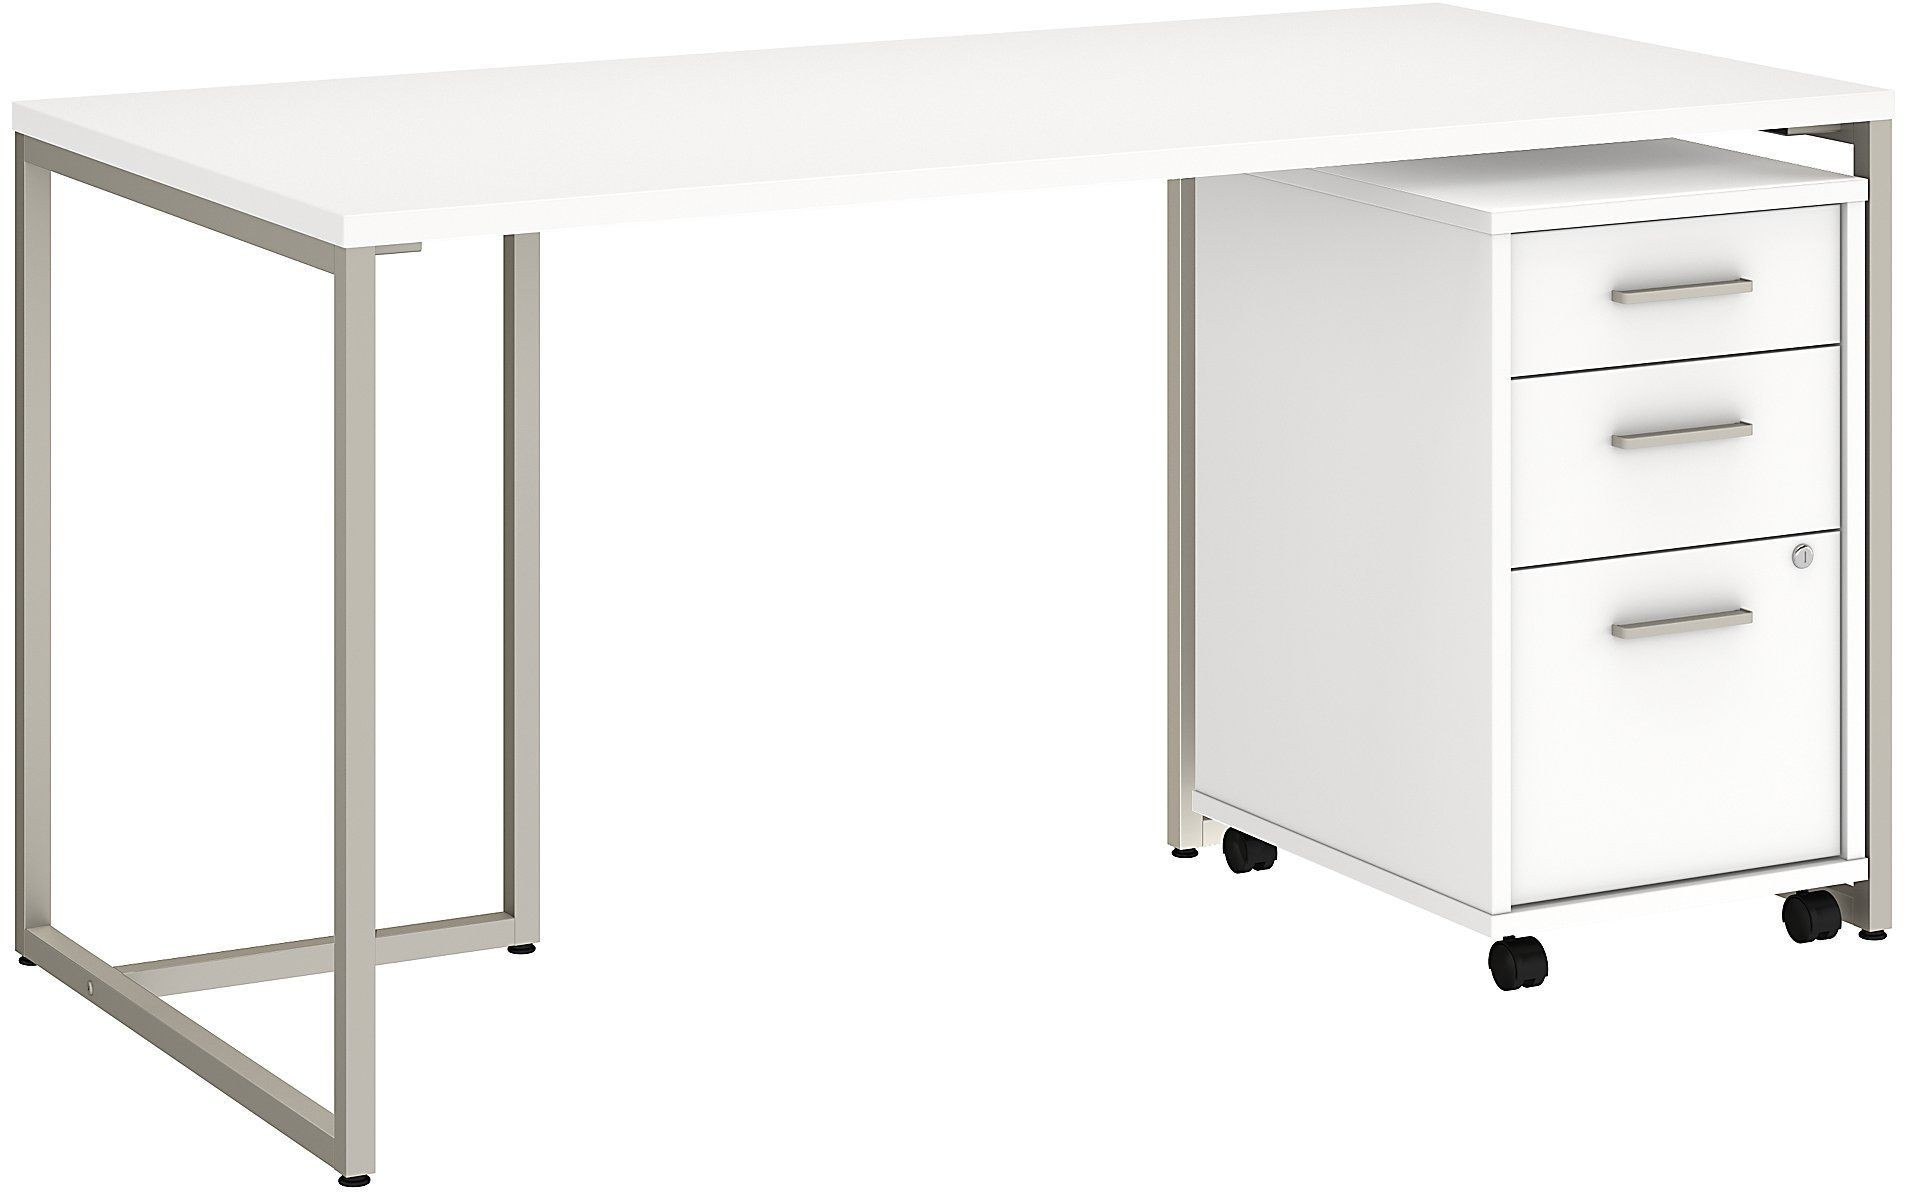 method white 60 table desk with 3 drawer mobile file cabinet from kathy ireland by bush. Black Bedroom Furniture Sets. Home Design Ideas